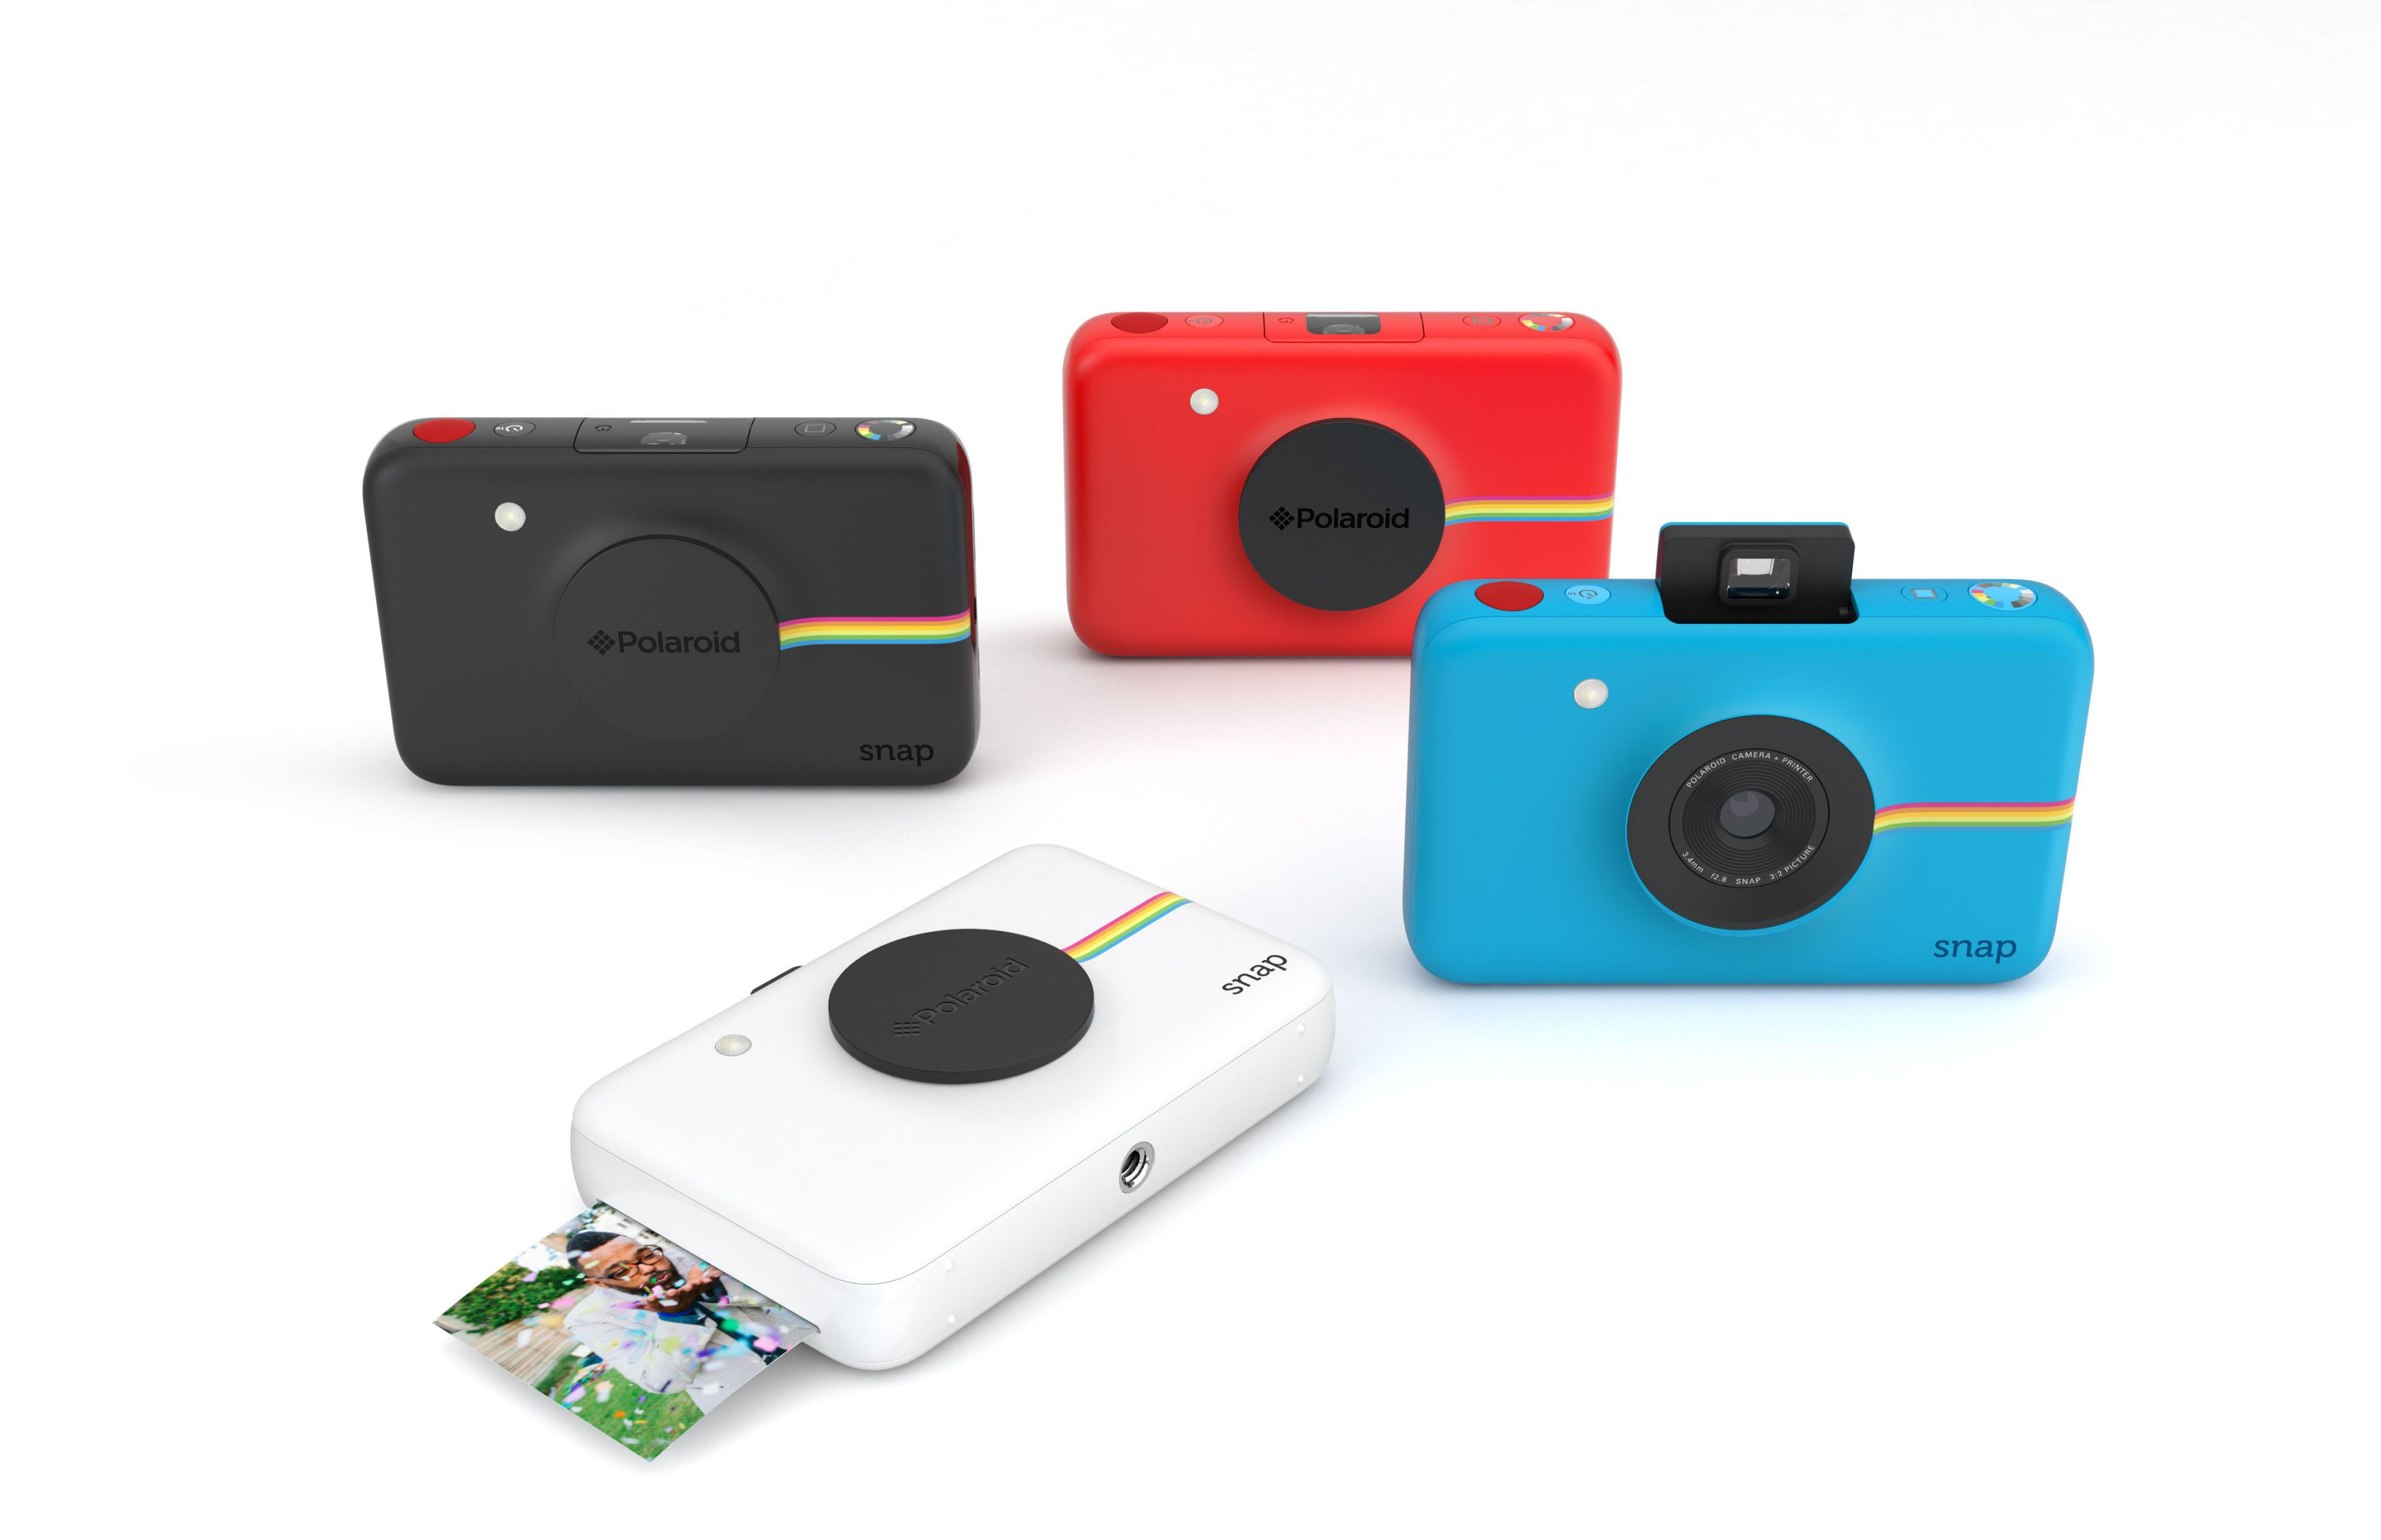 The Polaroid Snap Ups the Instant Camera Game